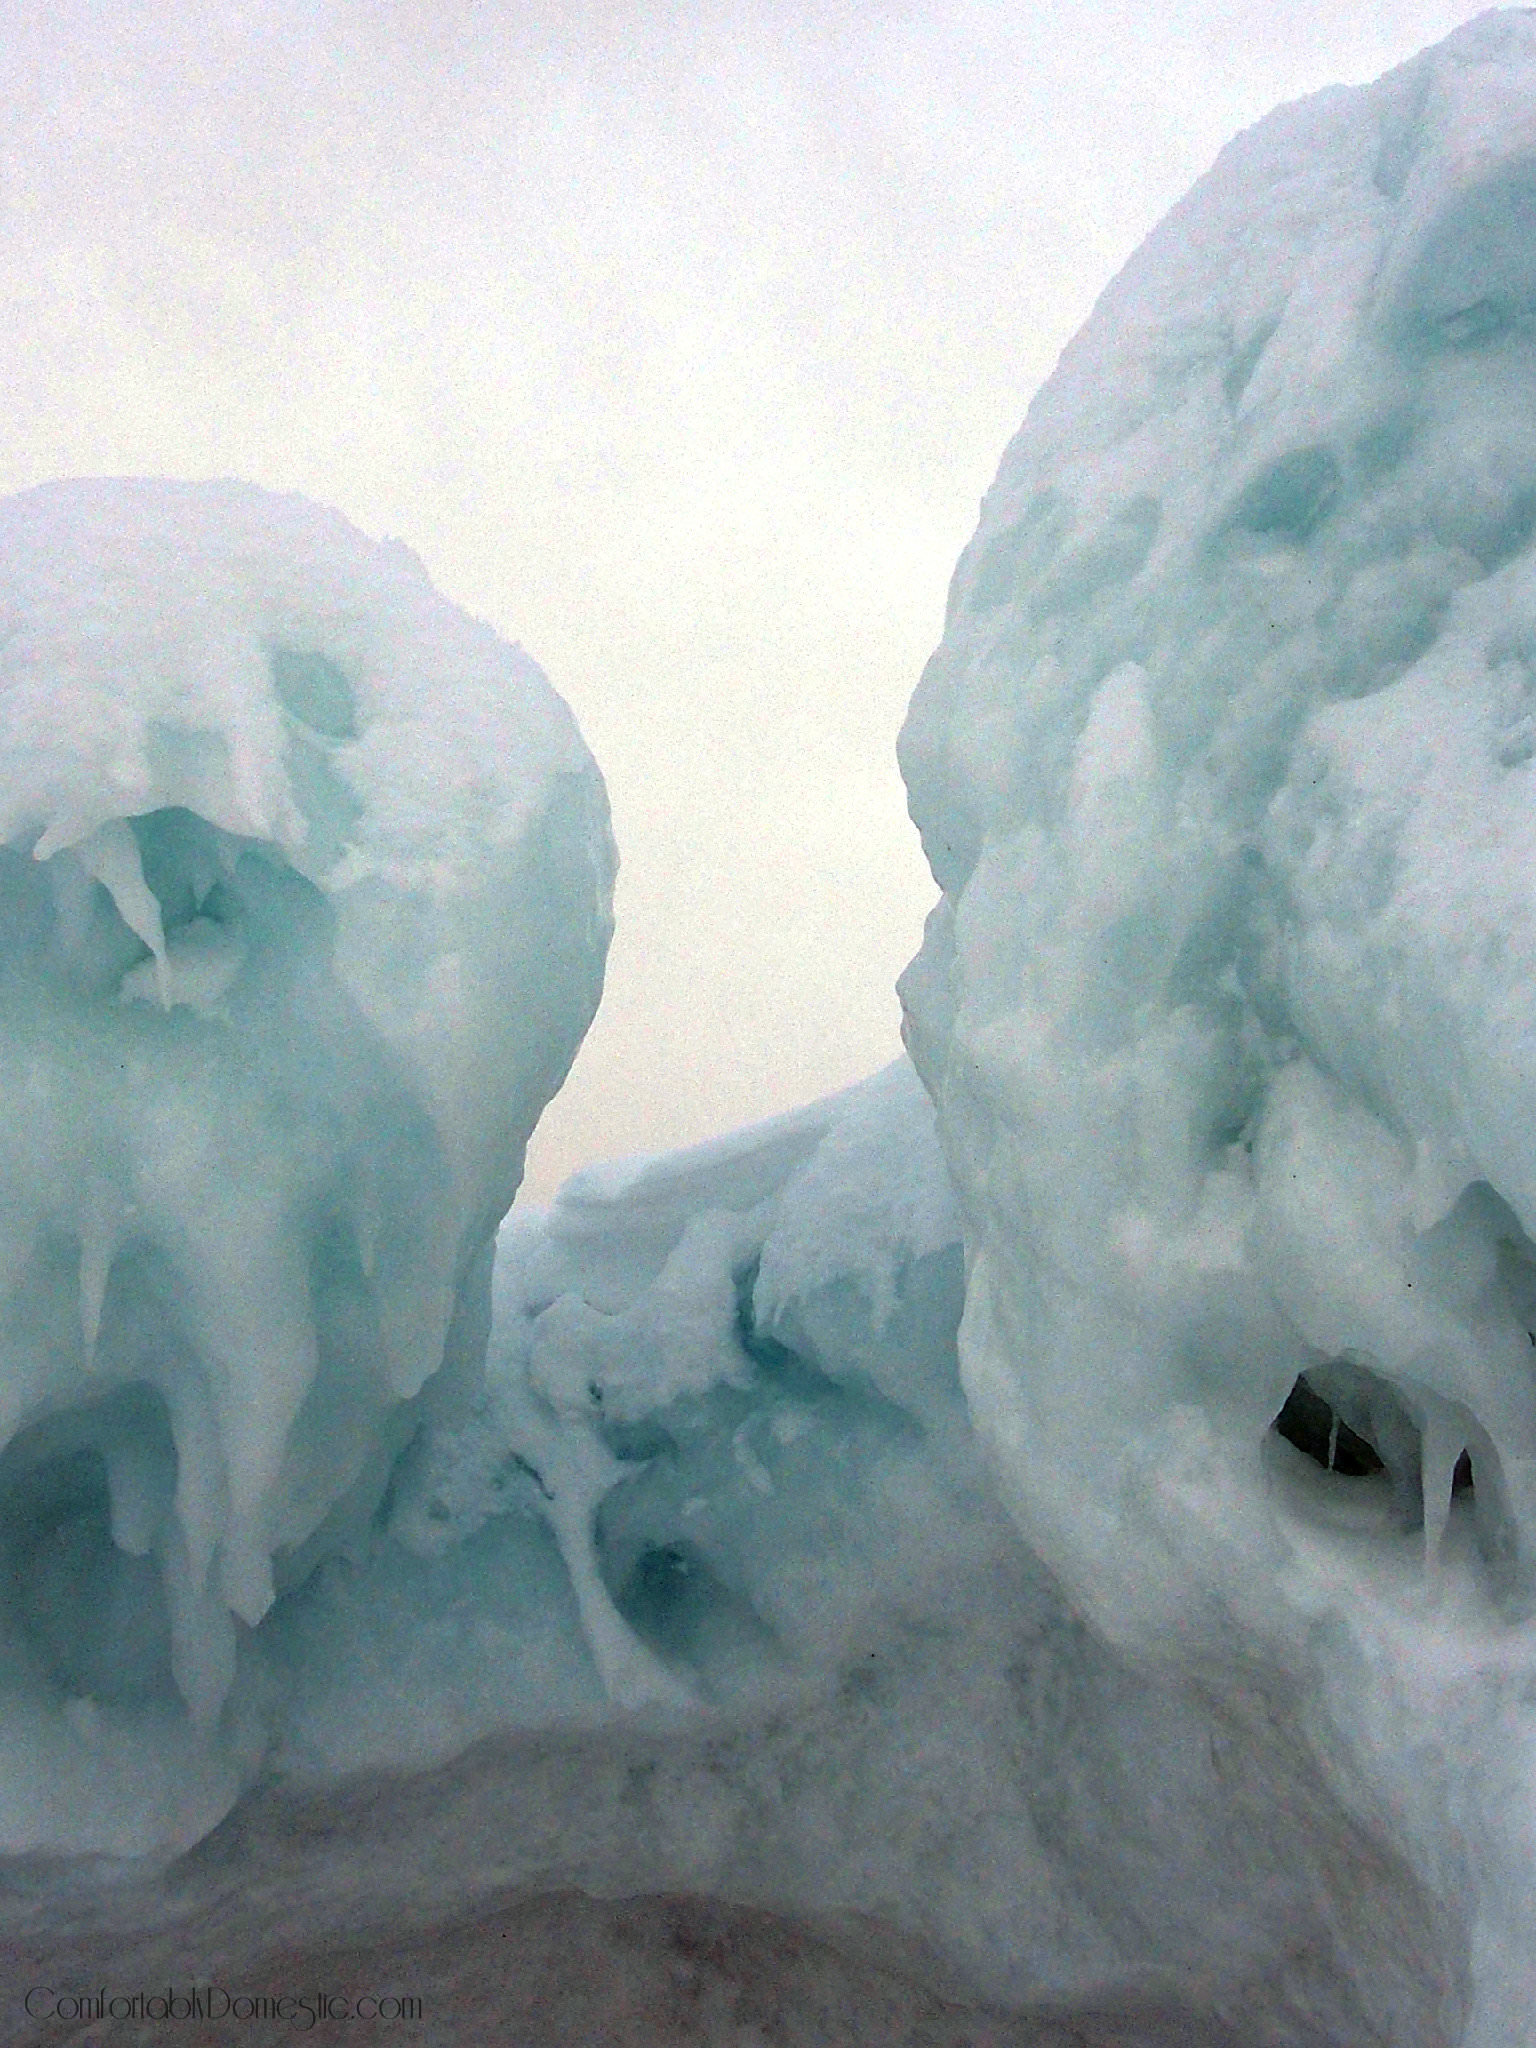 peering out of the ice